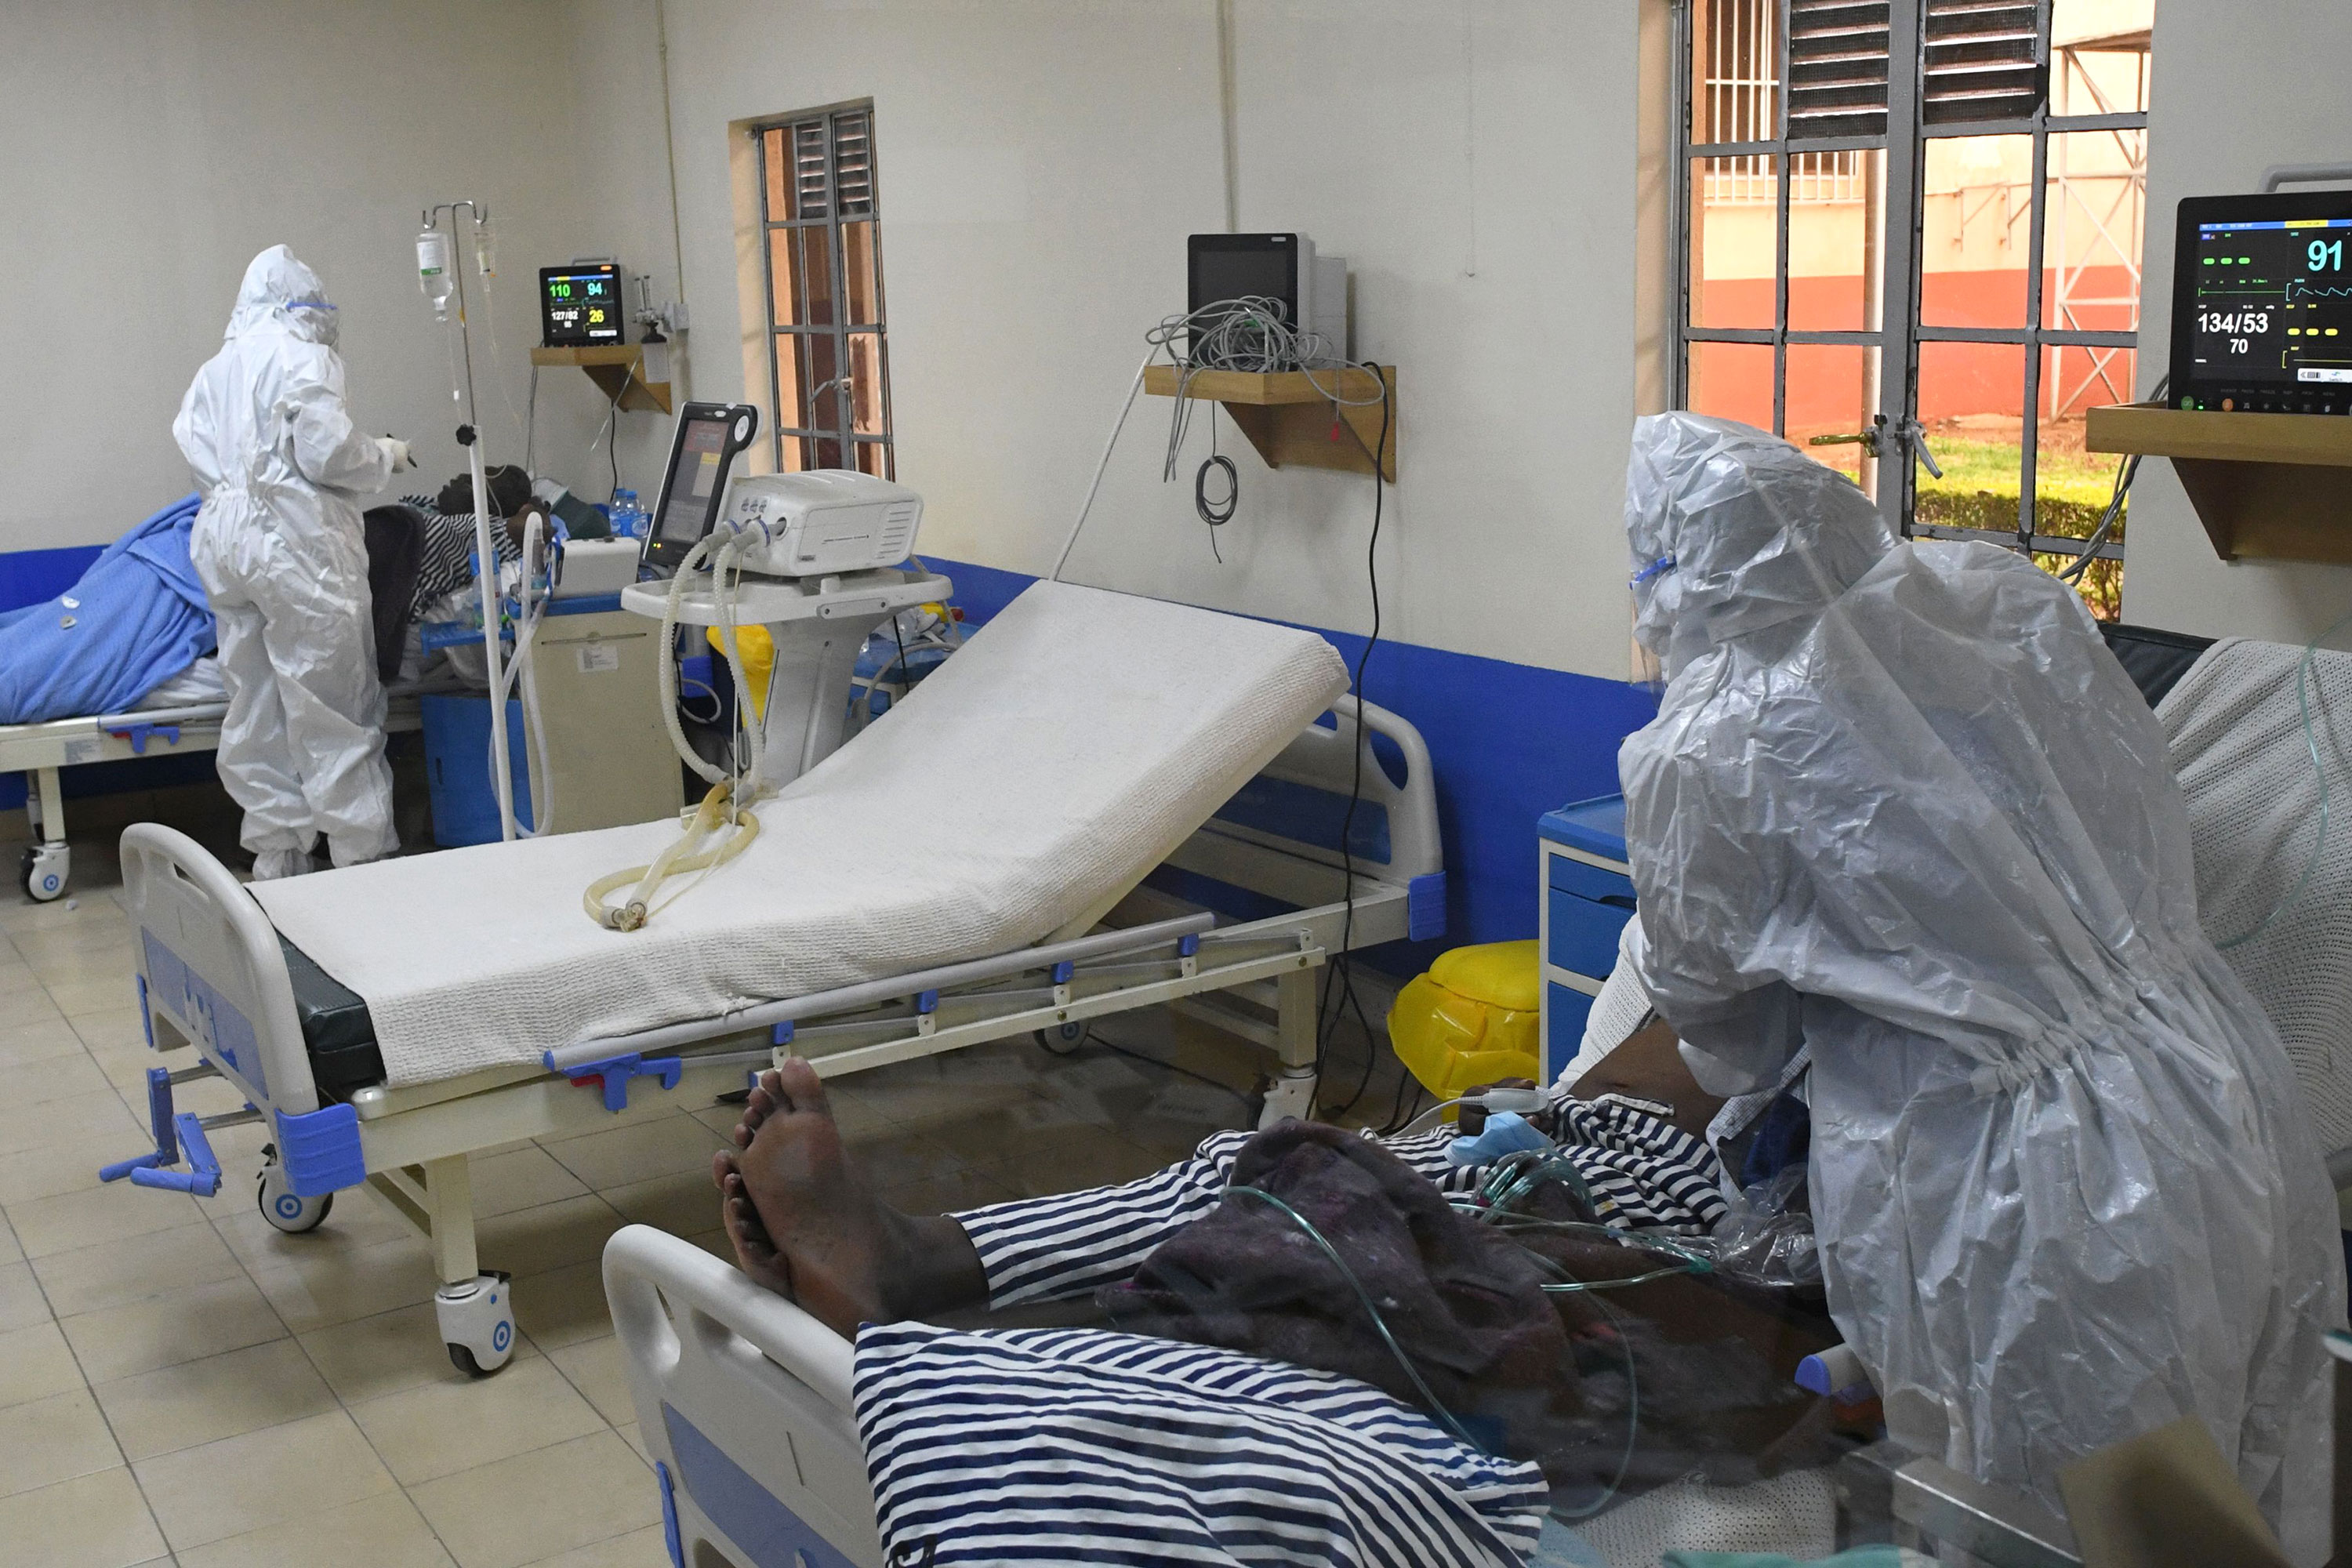 Medical staff members tend to coronavirus patients in the Intensive Care Unit of Machakos County Level-5 Hospital in Machakos, Kenya, on July 28th.